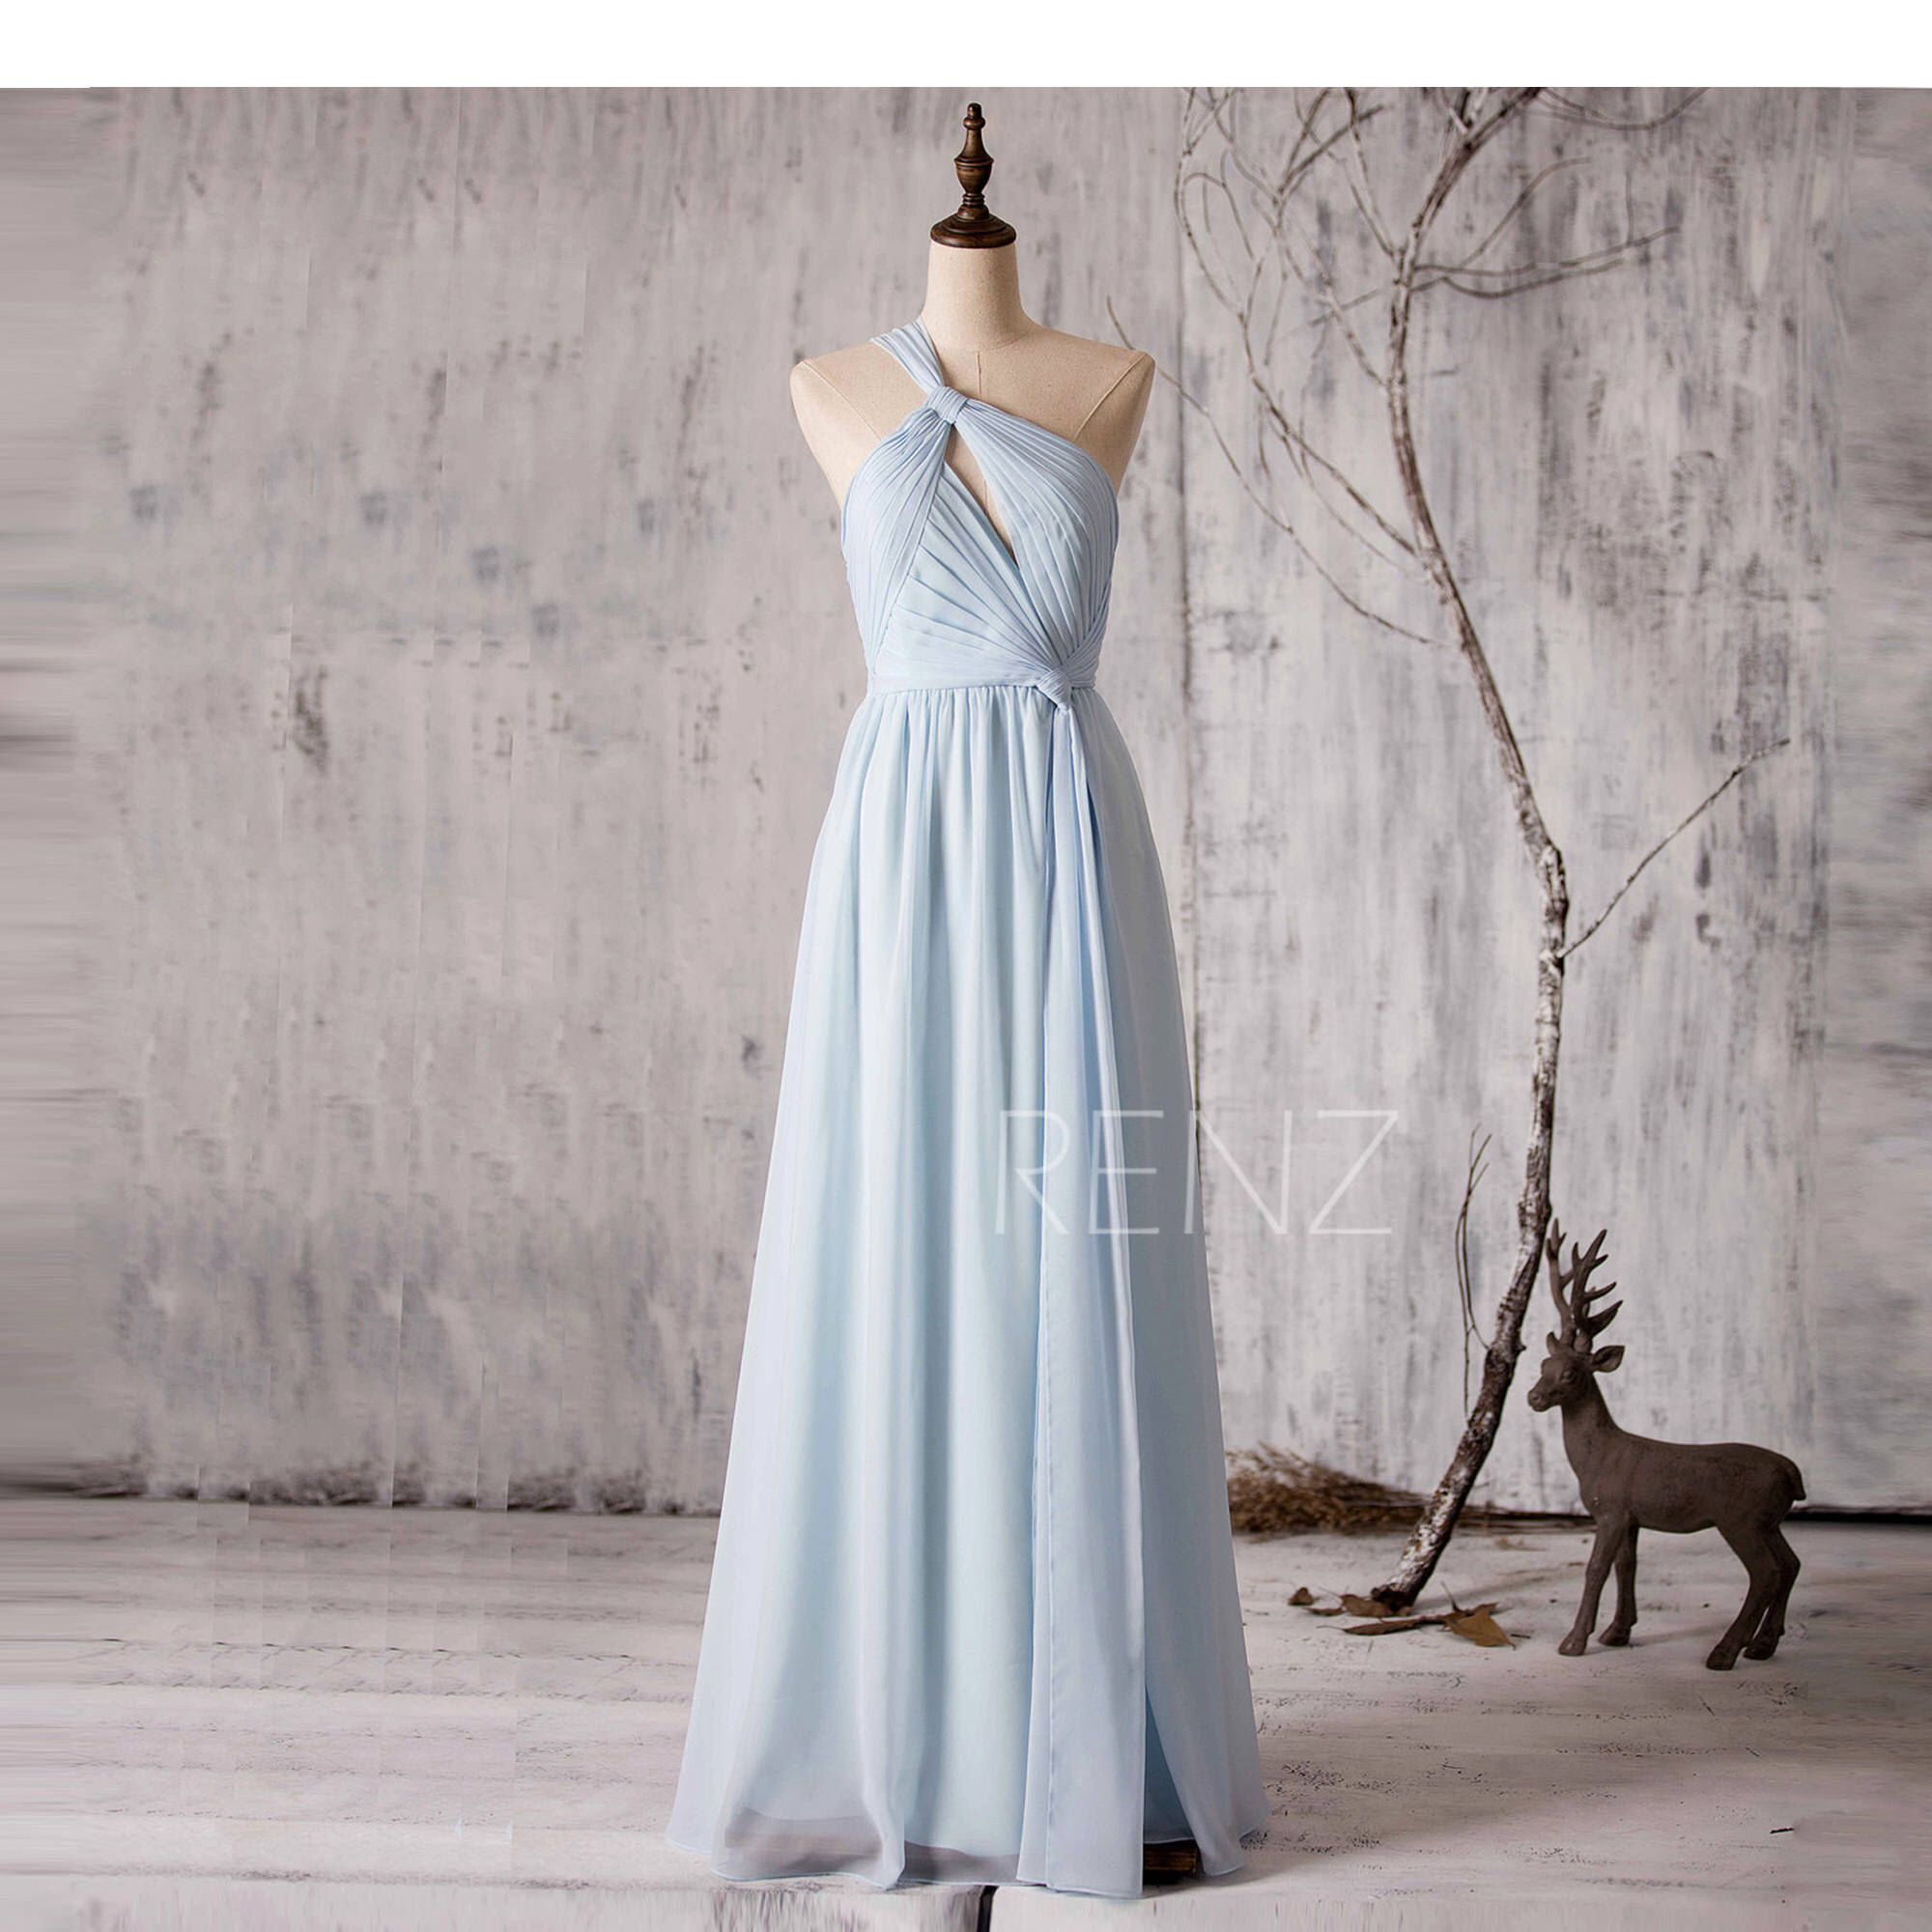 awesome bride lighting for bhldn of bridesmaid reception beach mother cecelia wedding inspirational rehearsal blue amp in light dress dresses